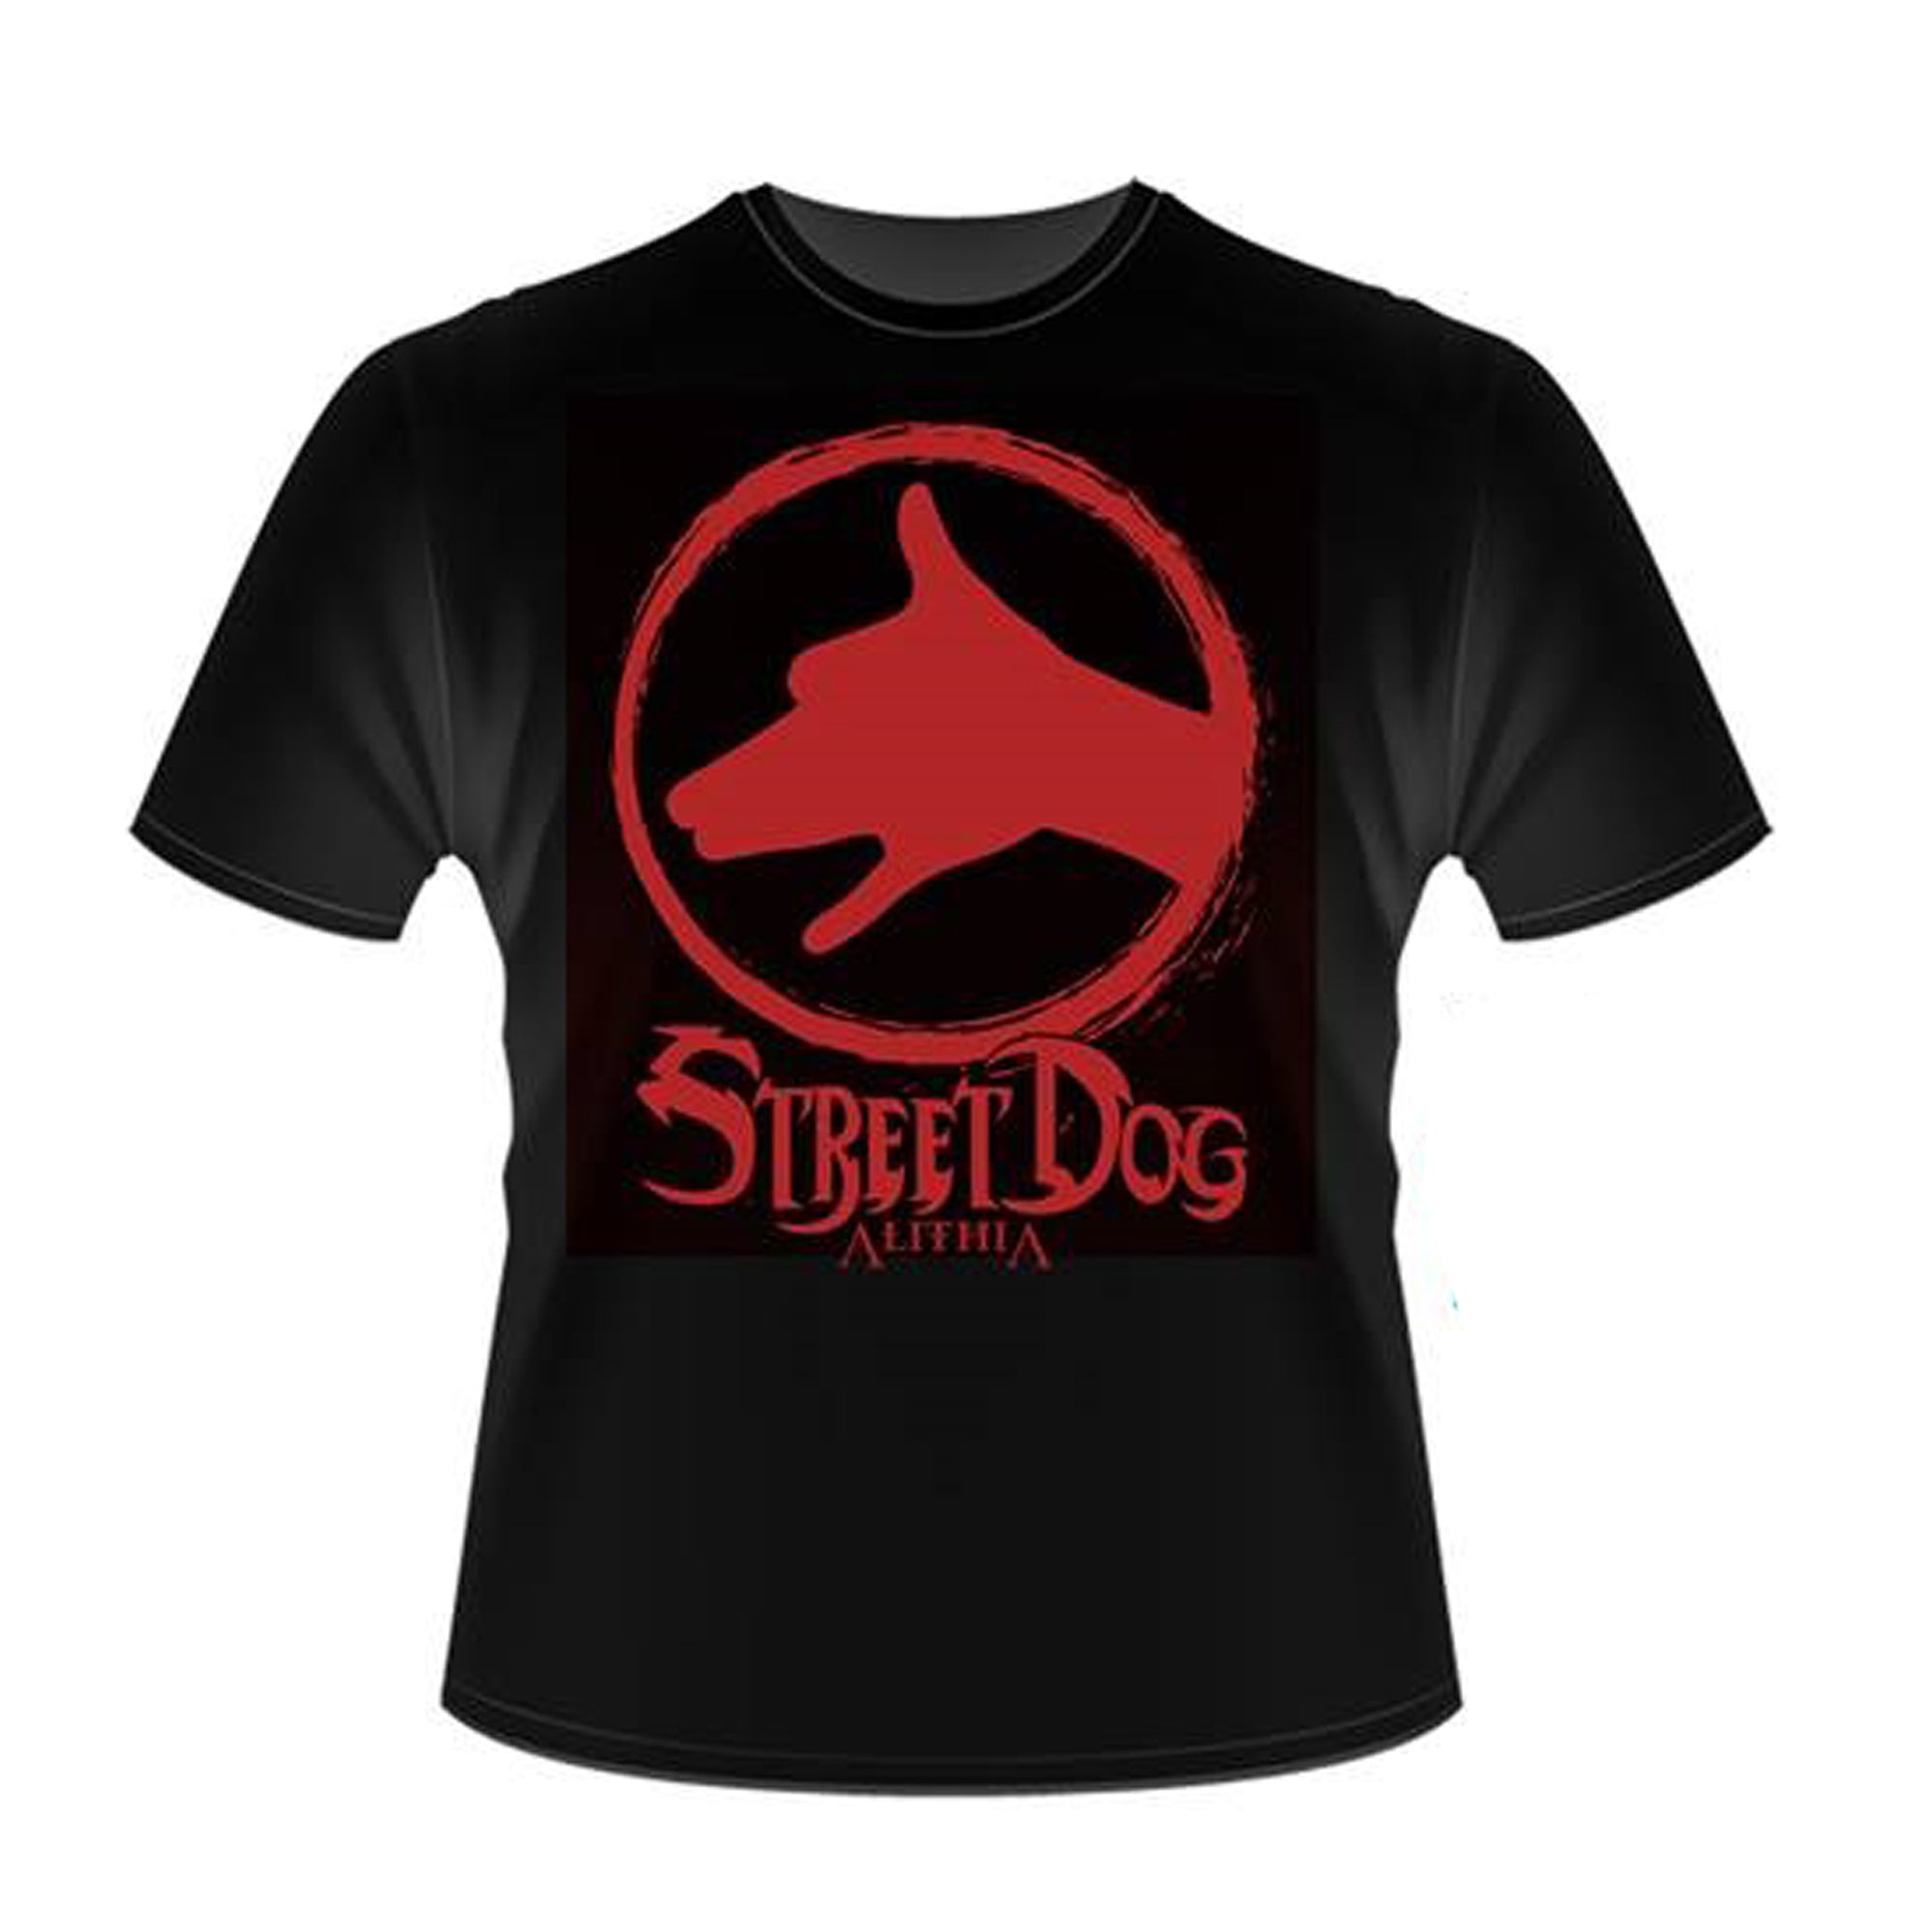 ALITHIA // STREET DOG T-SHIRT - BLACK